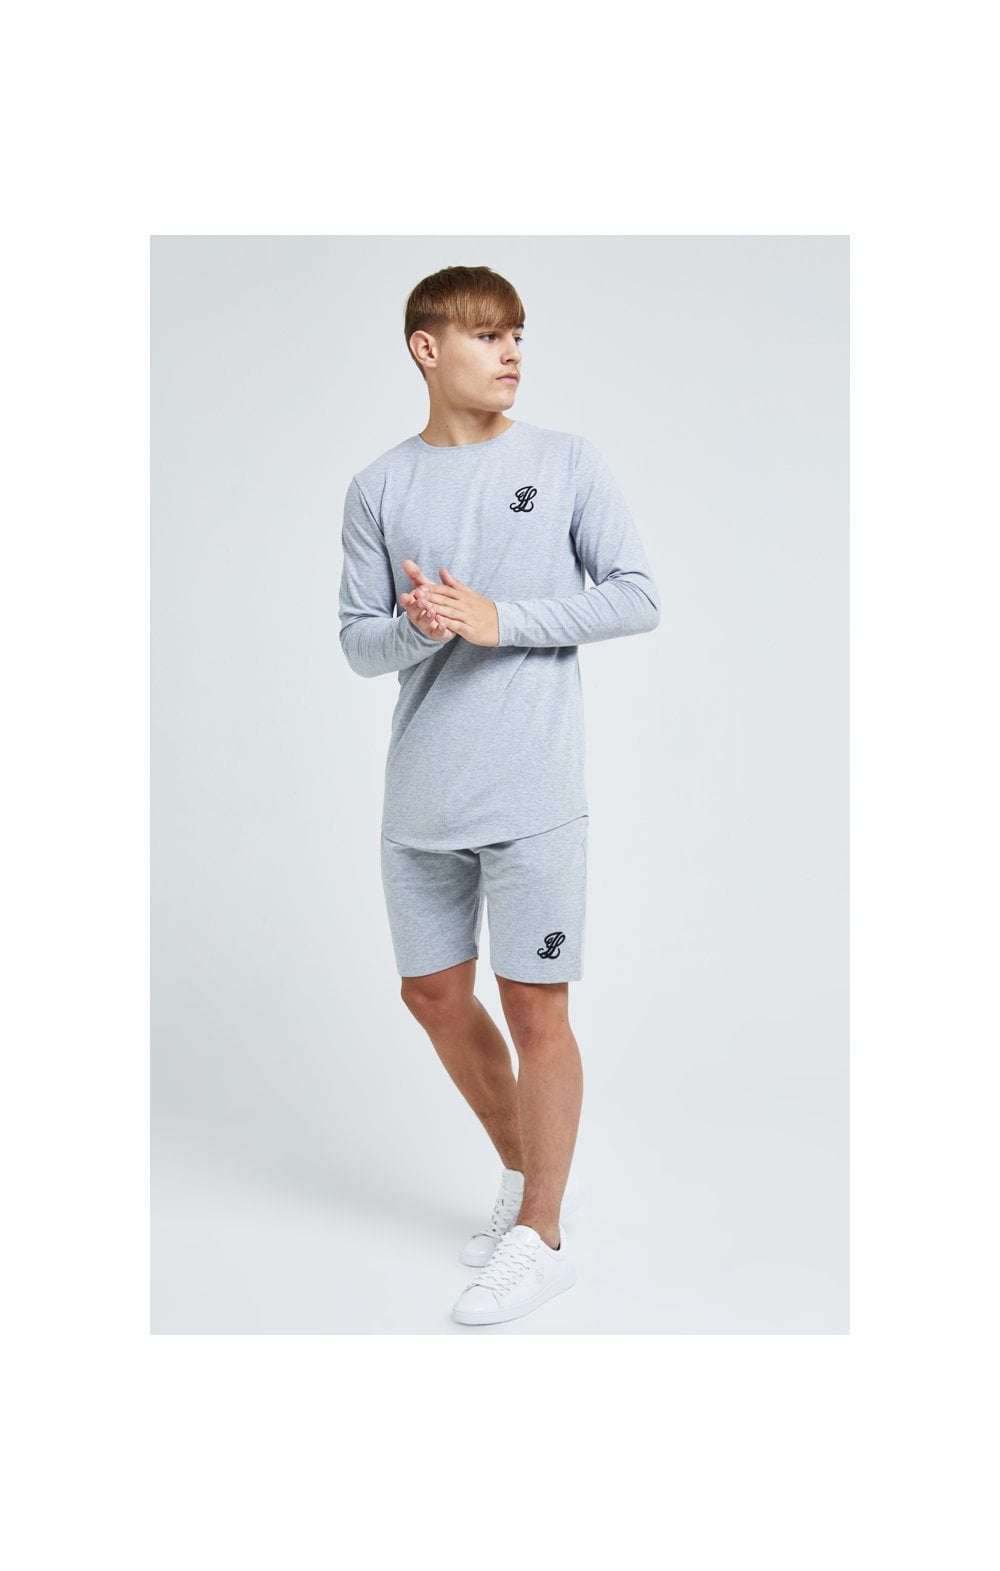 Illusive London L/S Core Tee - Grey Marl (4)